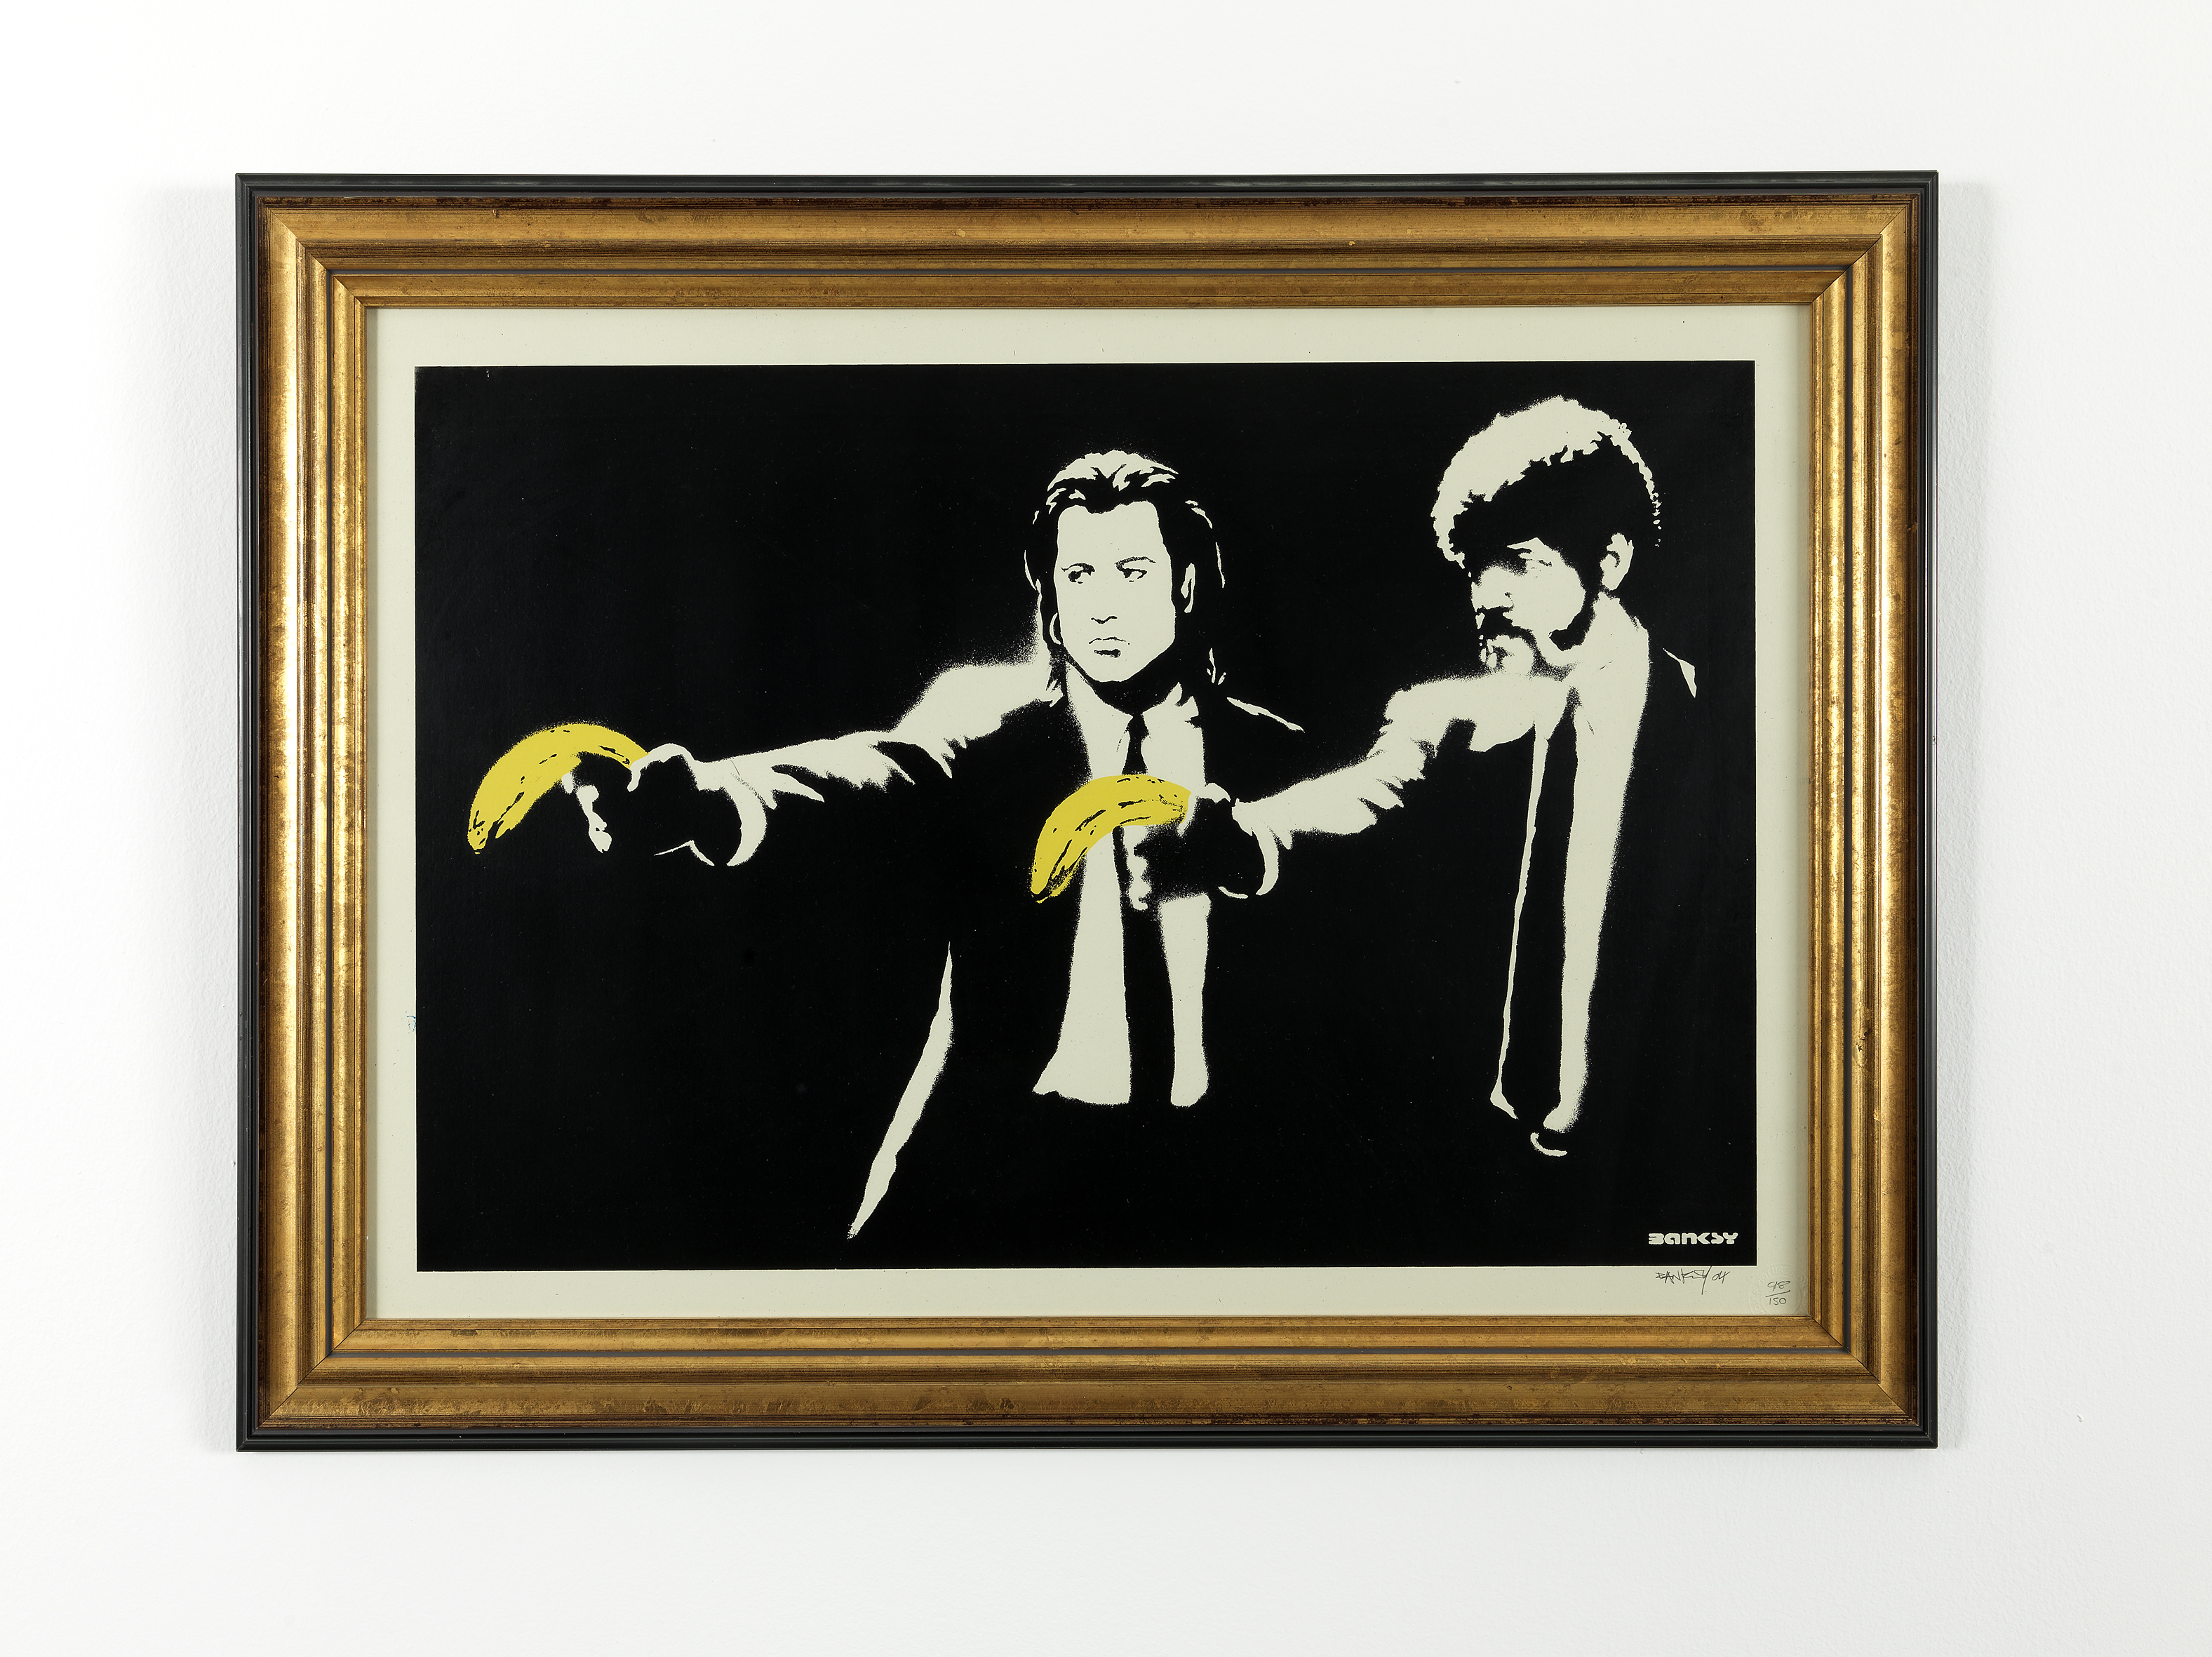 Banksy, Pulp fiction cm. 63 x 40_0040